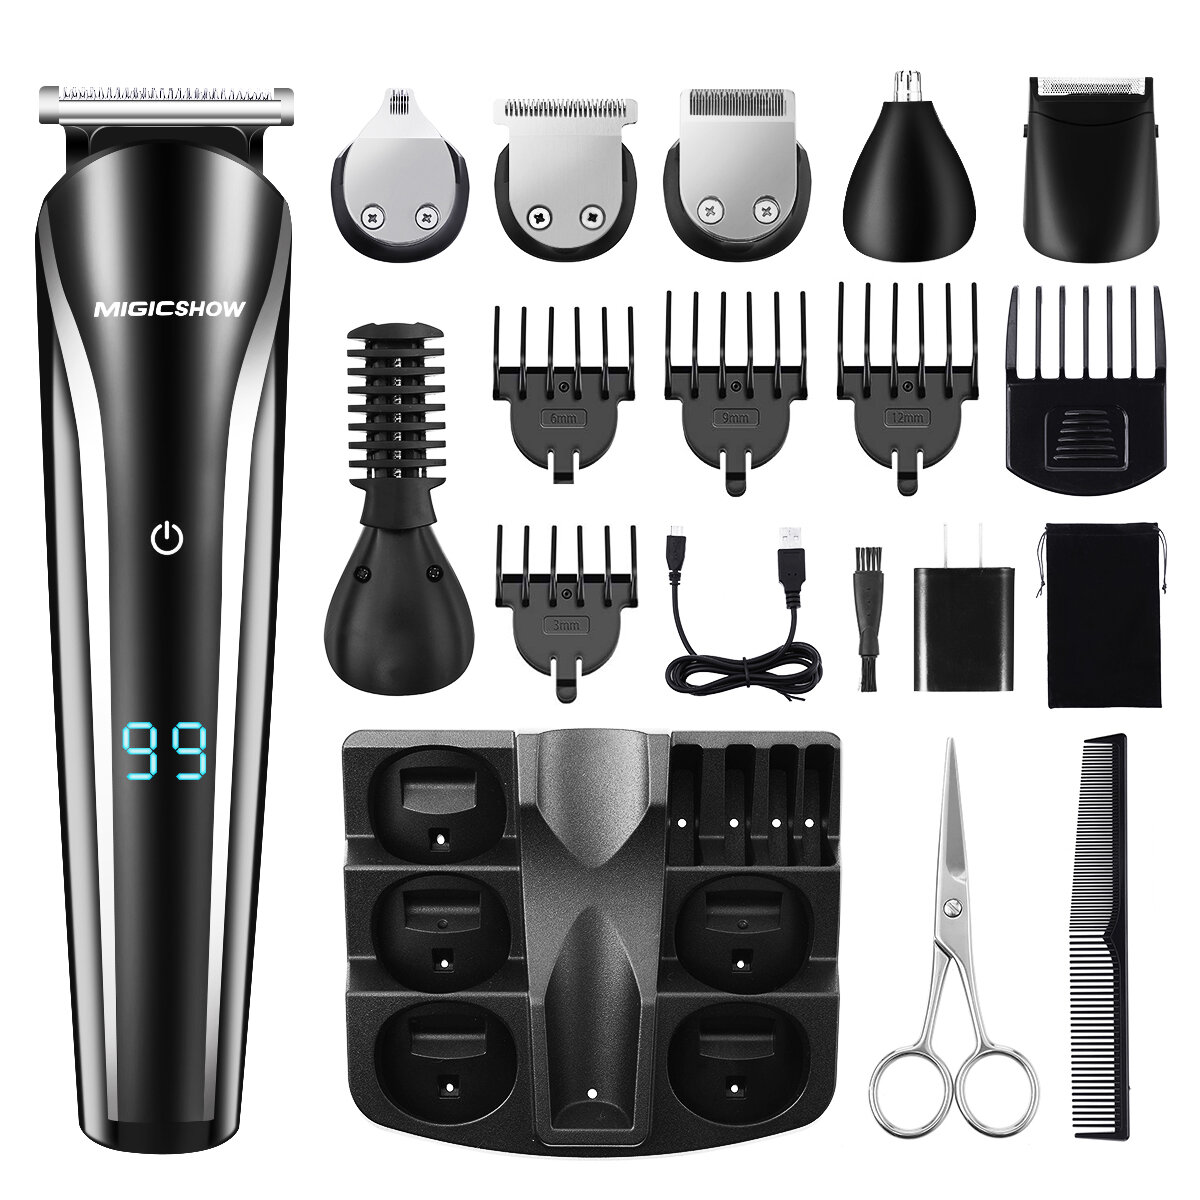 Y.F.M® Rechargeable Men Electric Hair Clipper Trimmer Beard Shaver 110-240V Haircut Ceramic Blade - 1